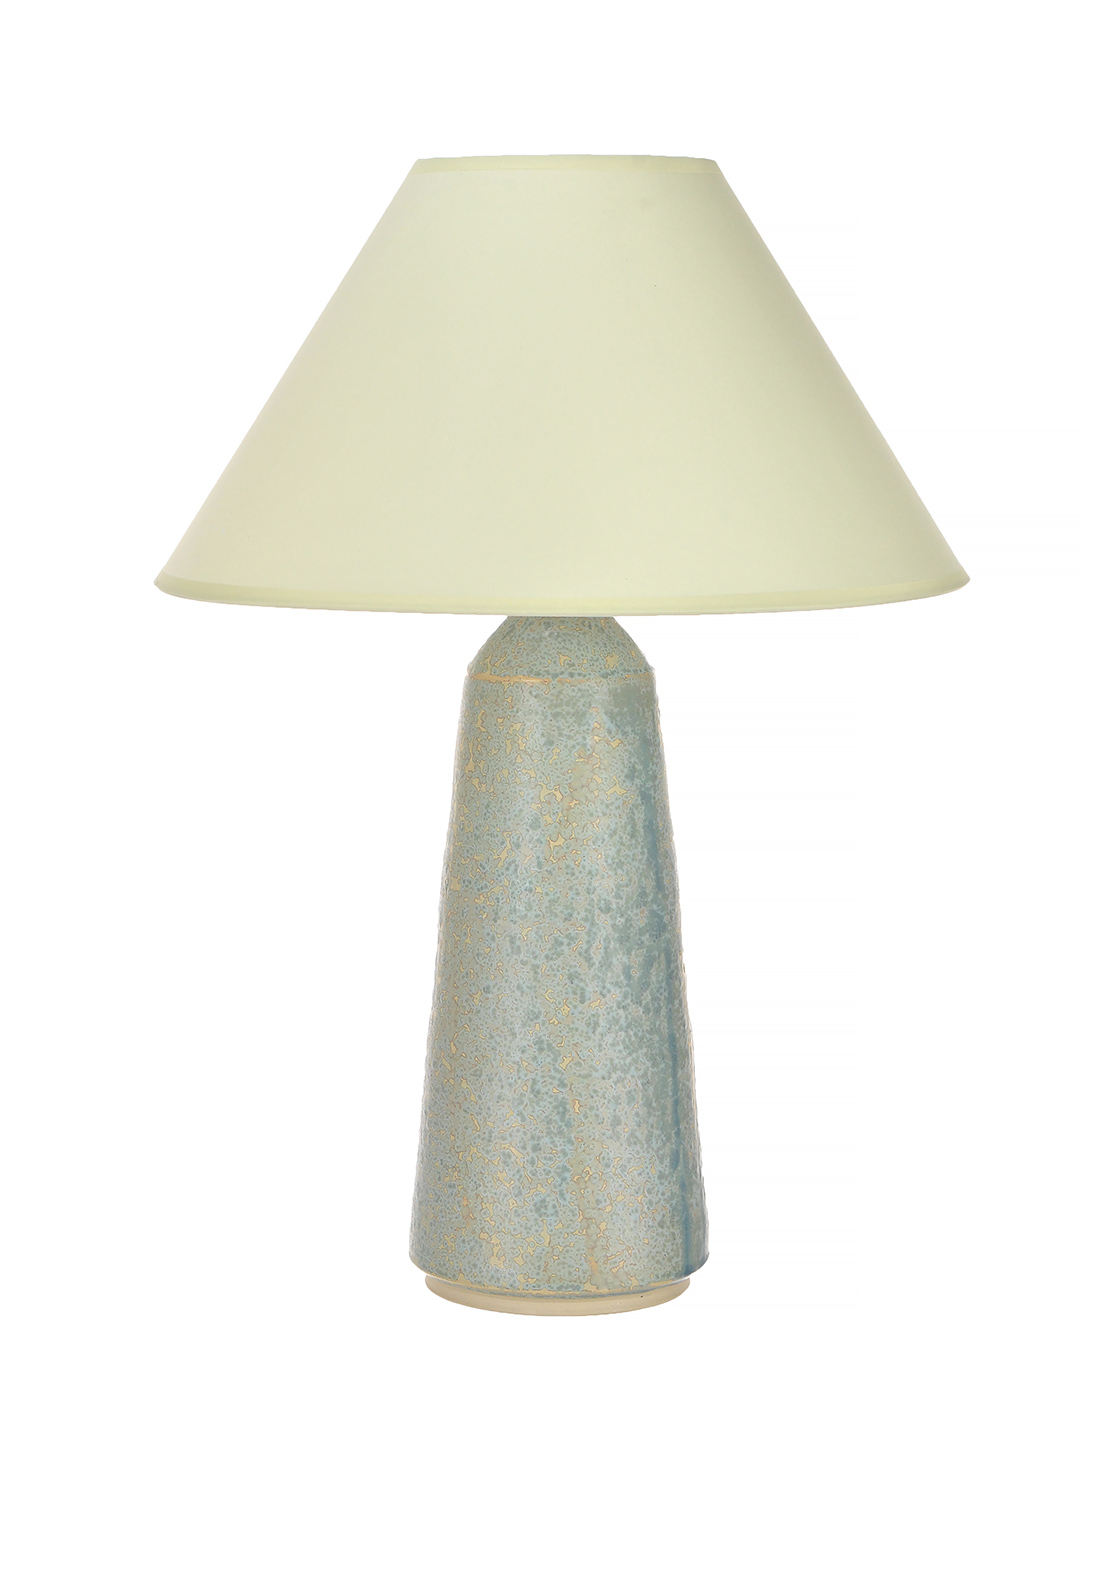 Moville Pottery Table Lamp & matching Shade